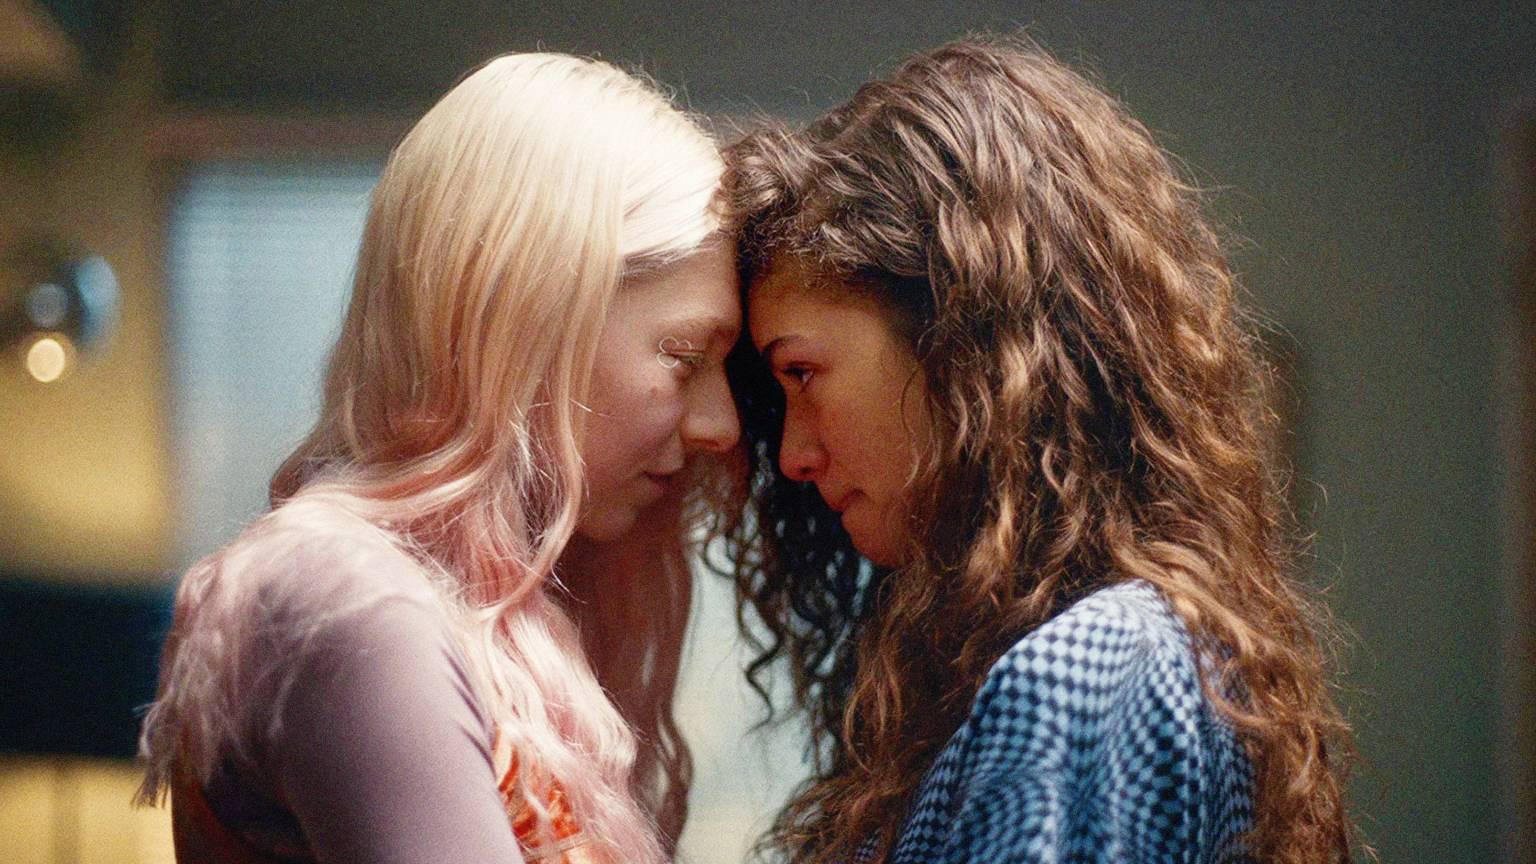 'Euphoria' and the Evolving Boundaries of TV Sexuality